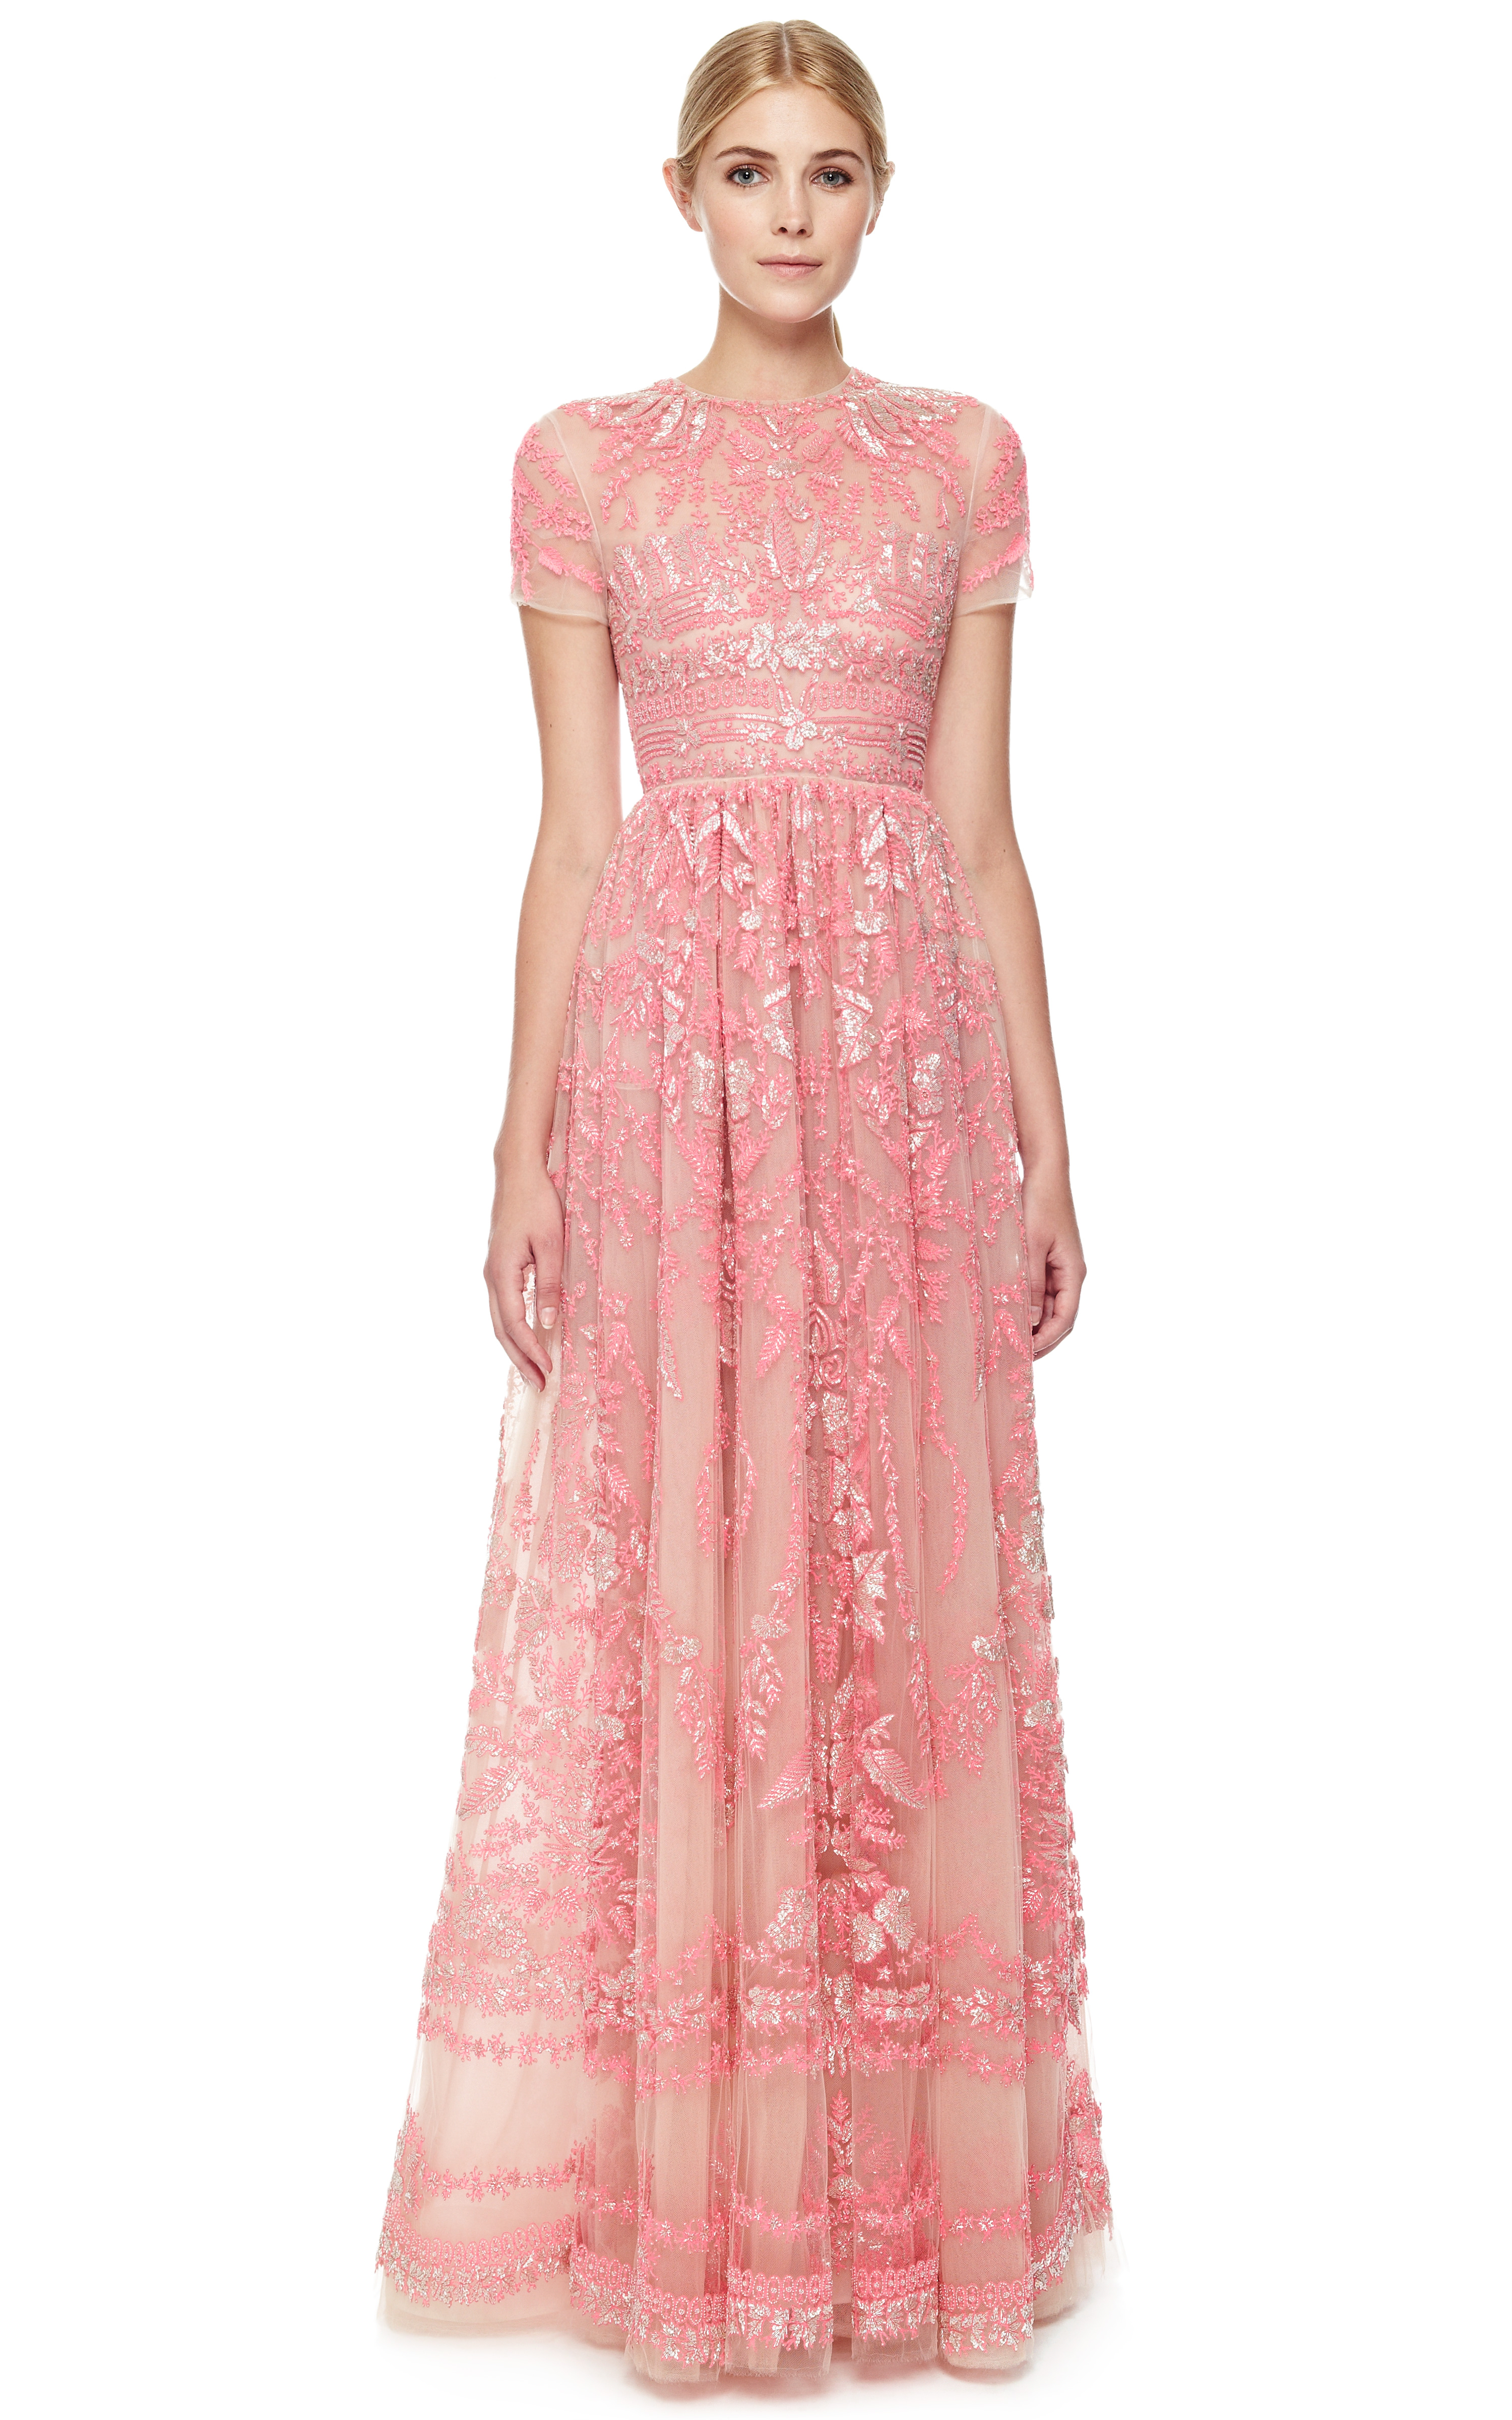 Lyst - Valentino Gown in Pink